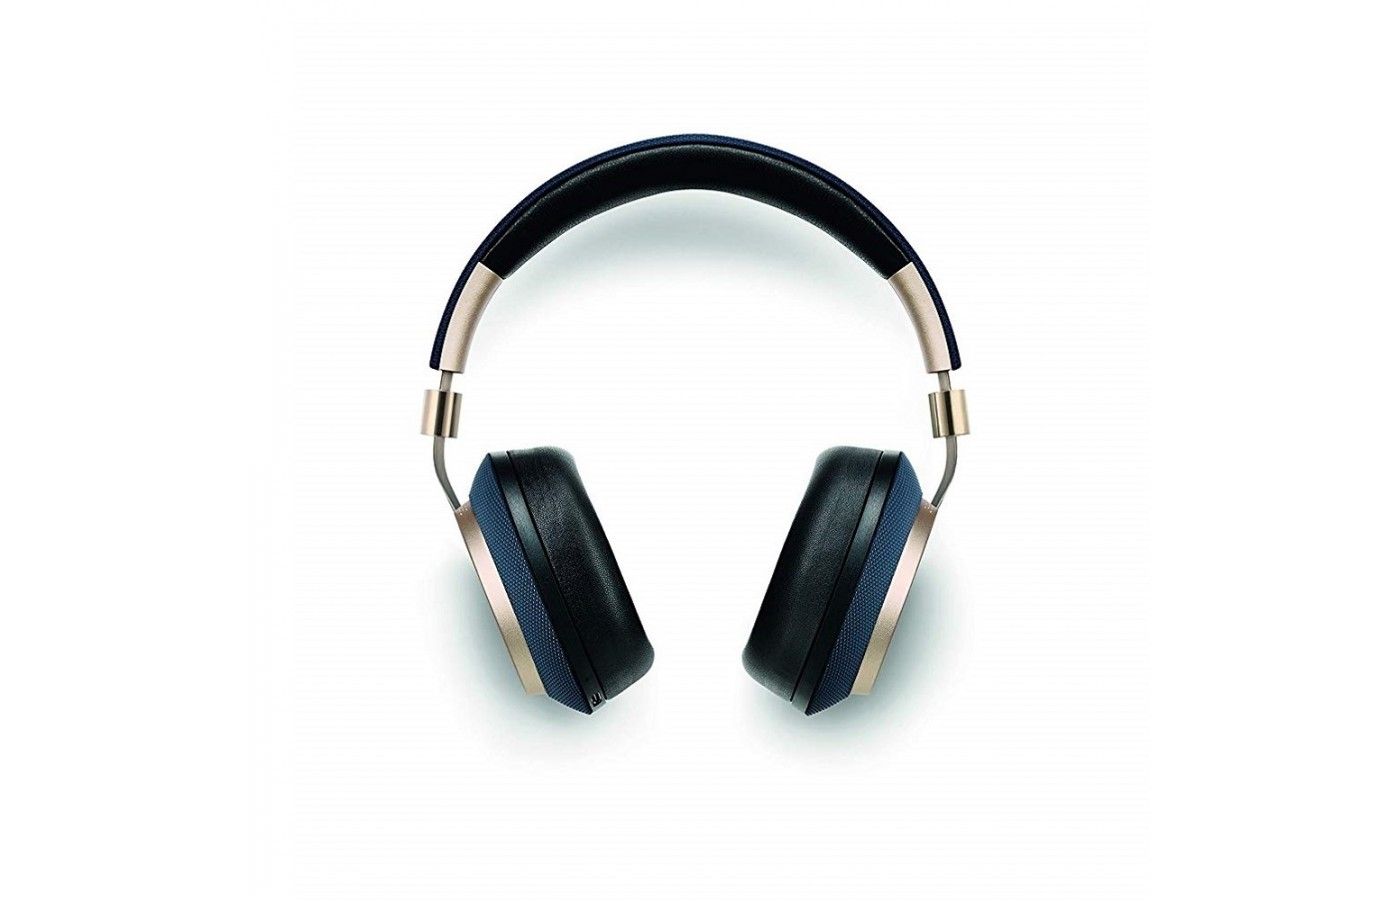 The Bowers & Wilkins PX offers customization noise cancellation features depending on the environment.